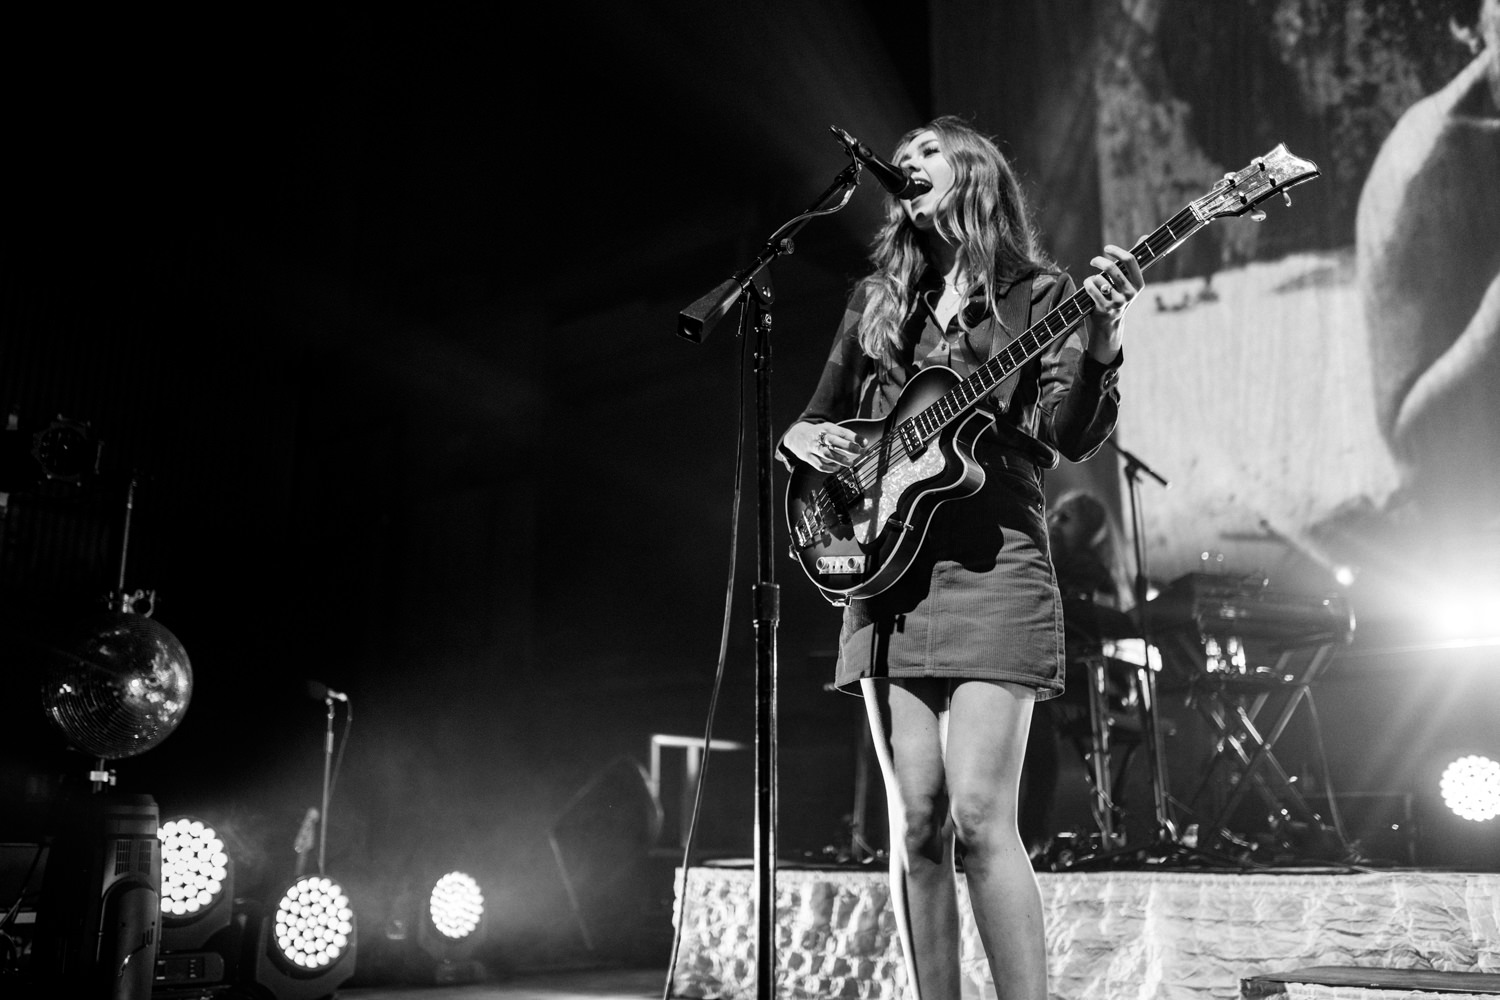 Johanna Söderberg First Aid Kit Singing